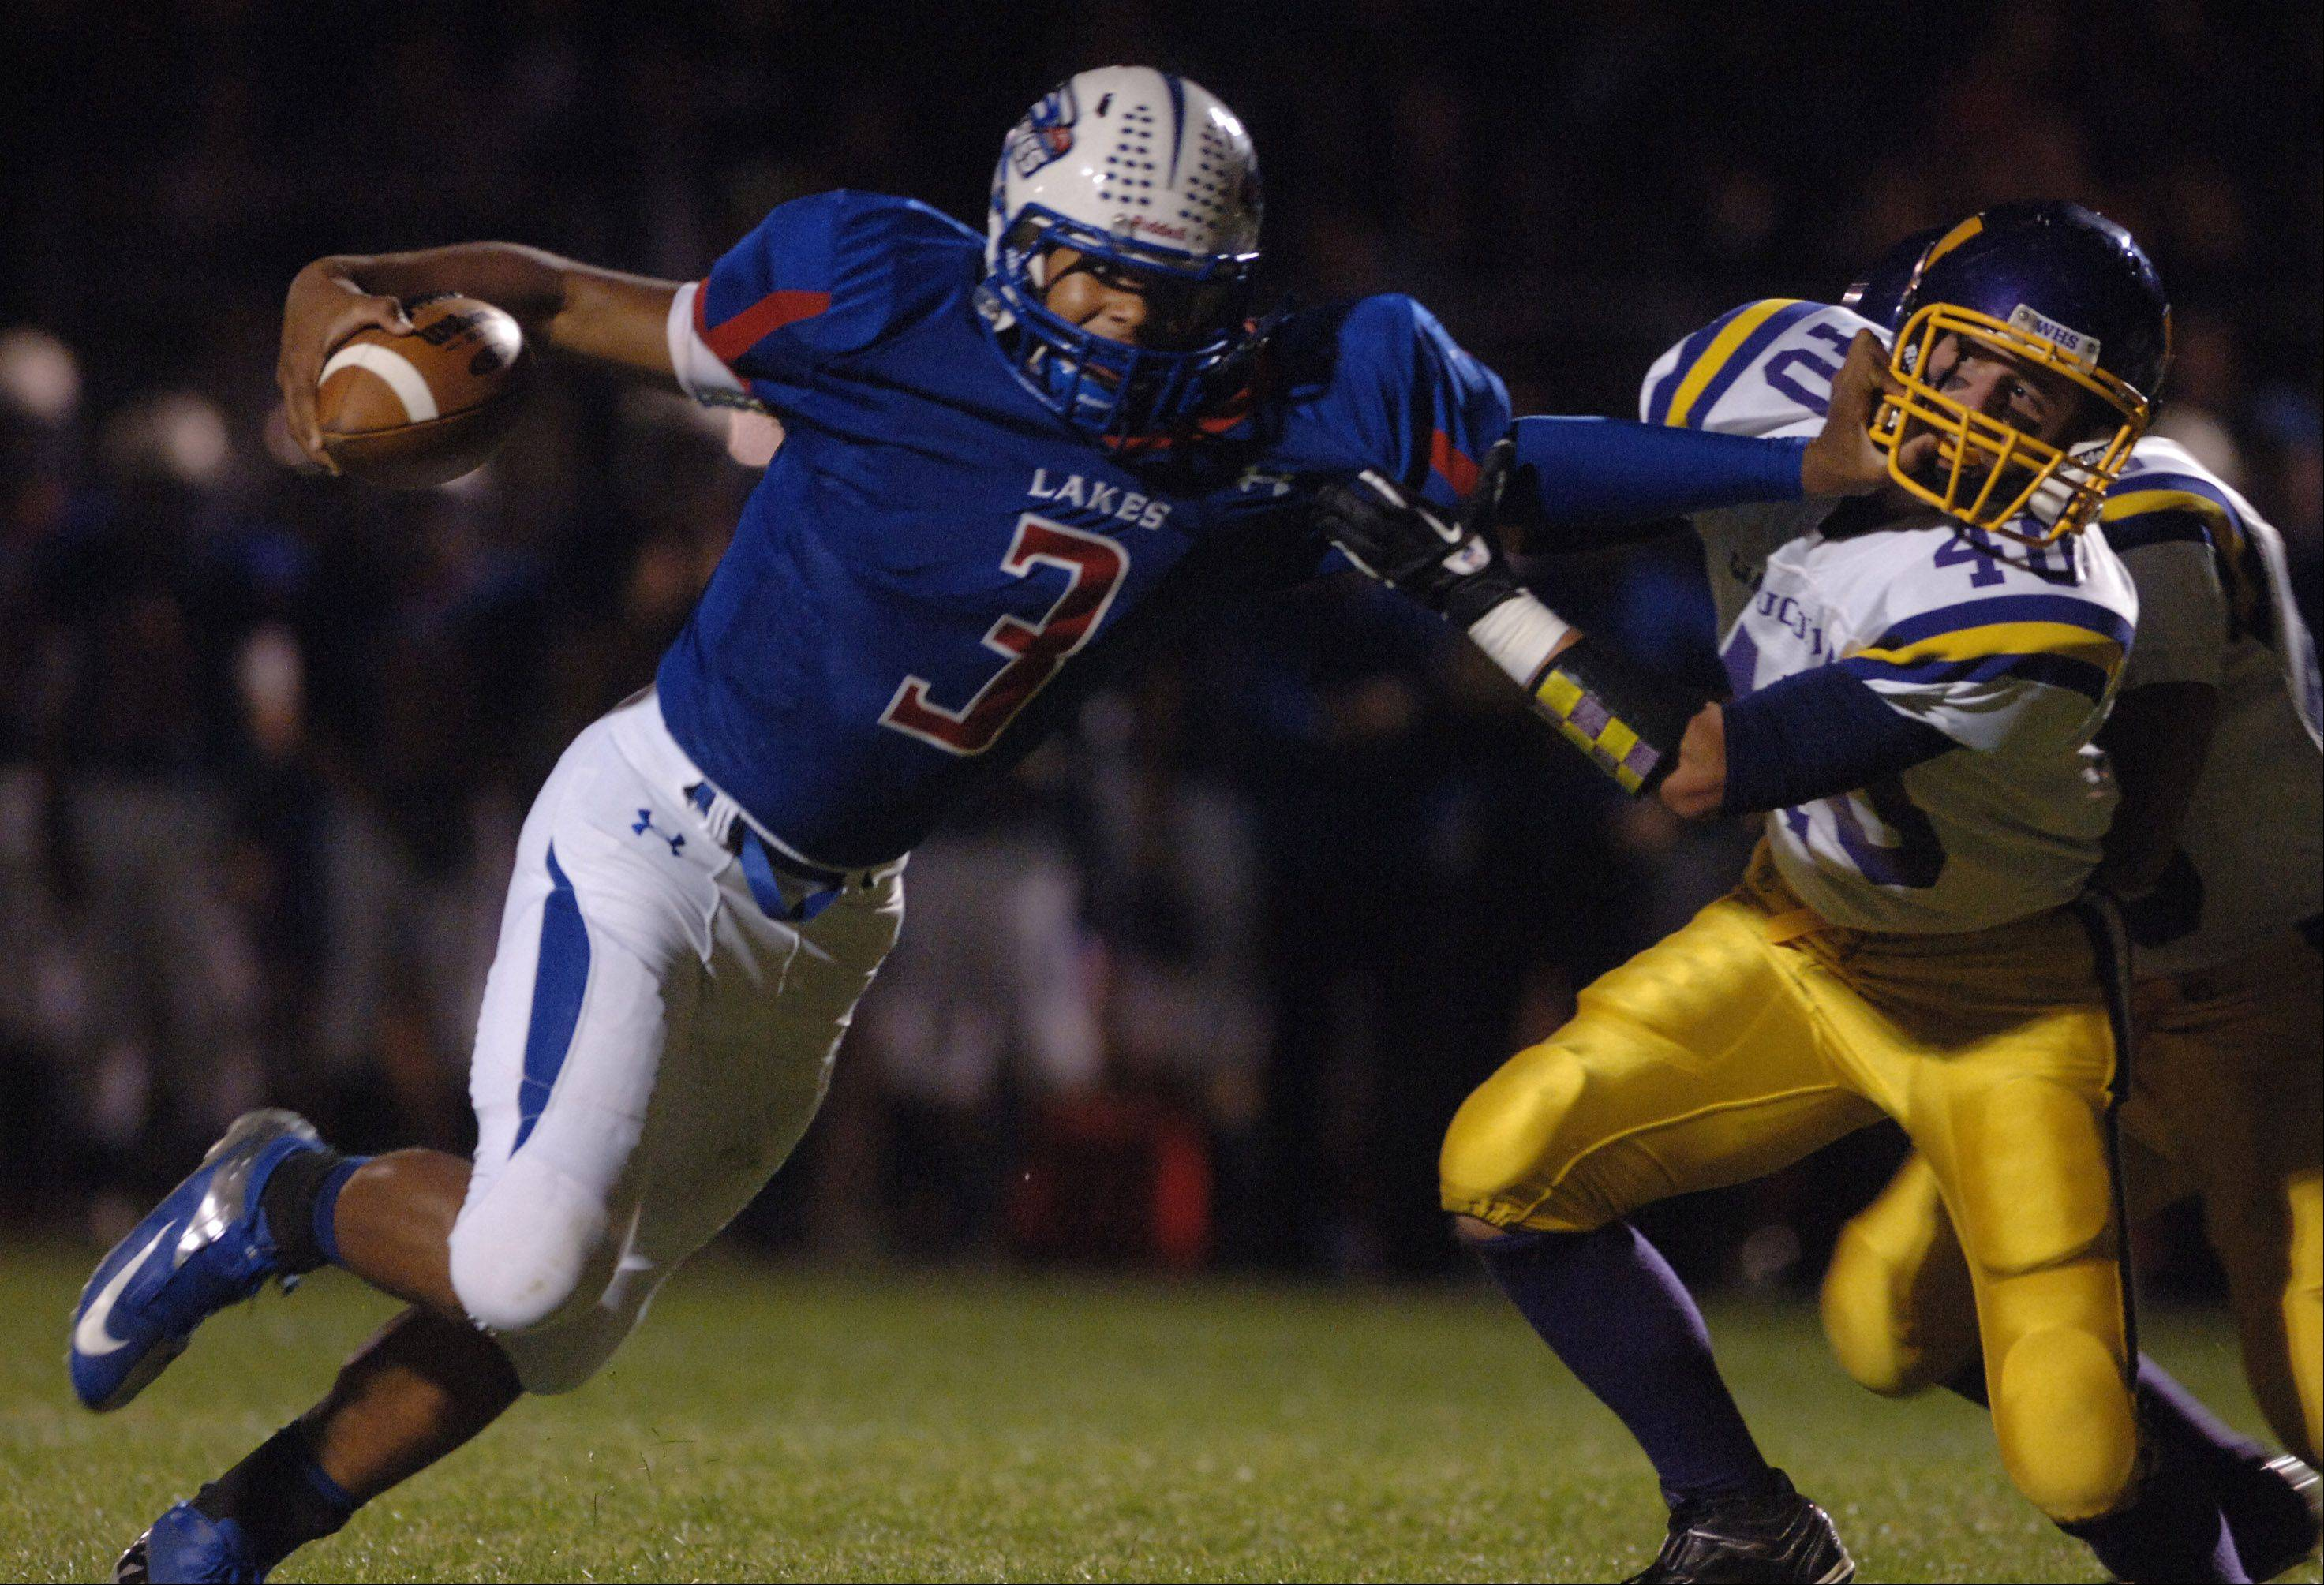 Lakes� T. J. Edwards (3) gives Wauconda�s Elliot Hill a shove as he runs a play Friday in Lake Villa.